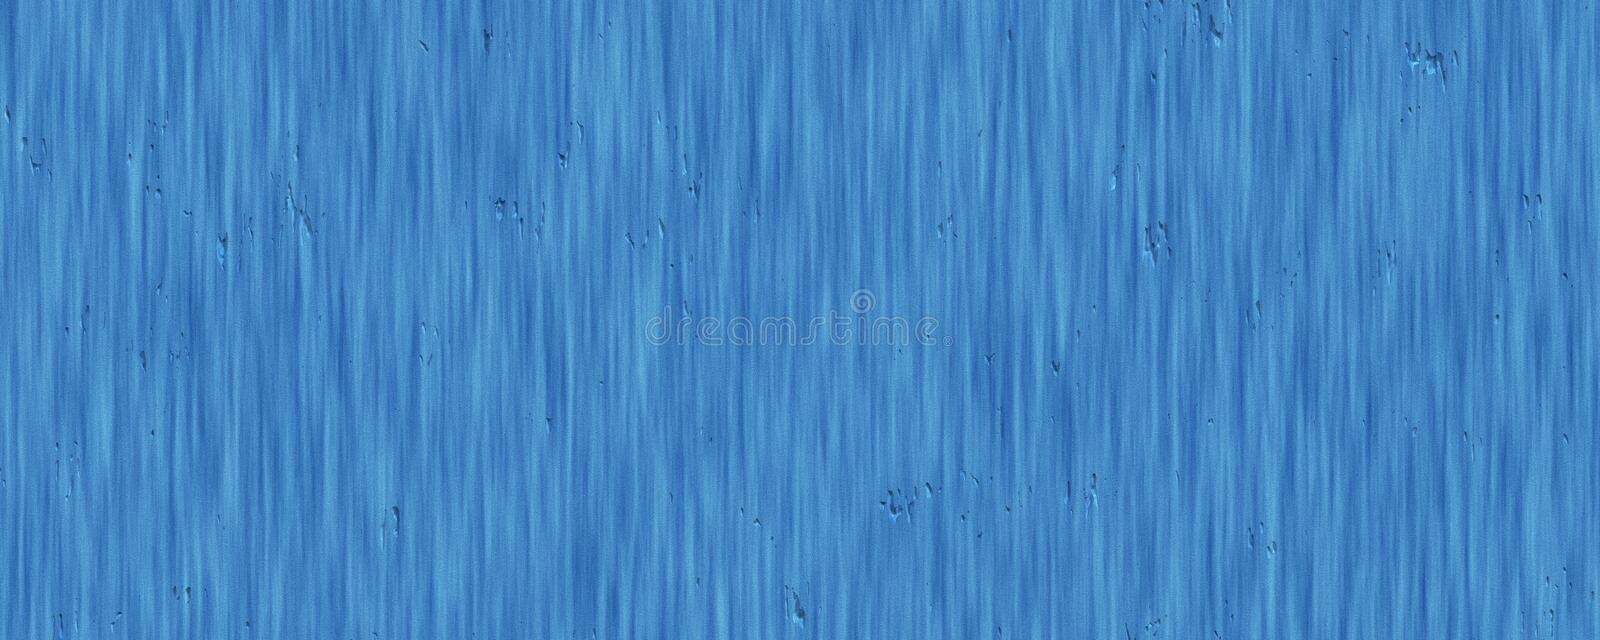 Closeup dirty blue wooden surface grunge texture background royalty free stock photography